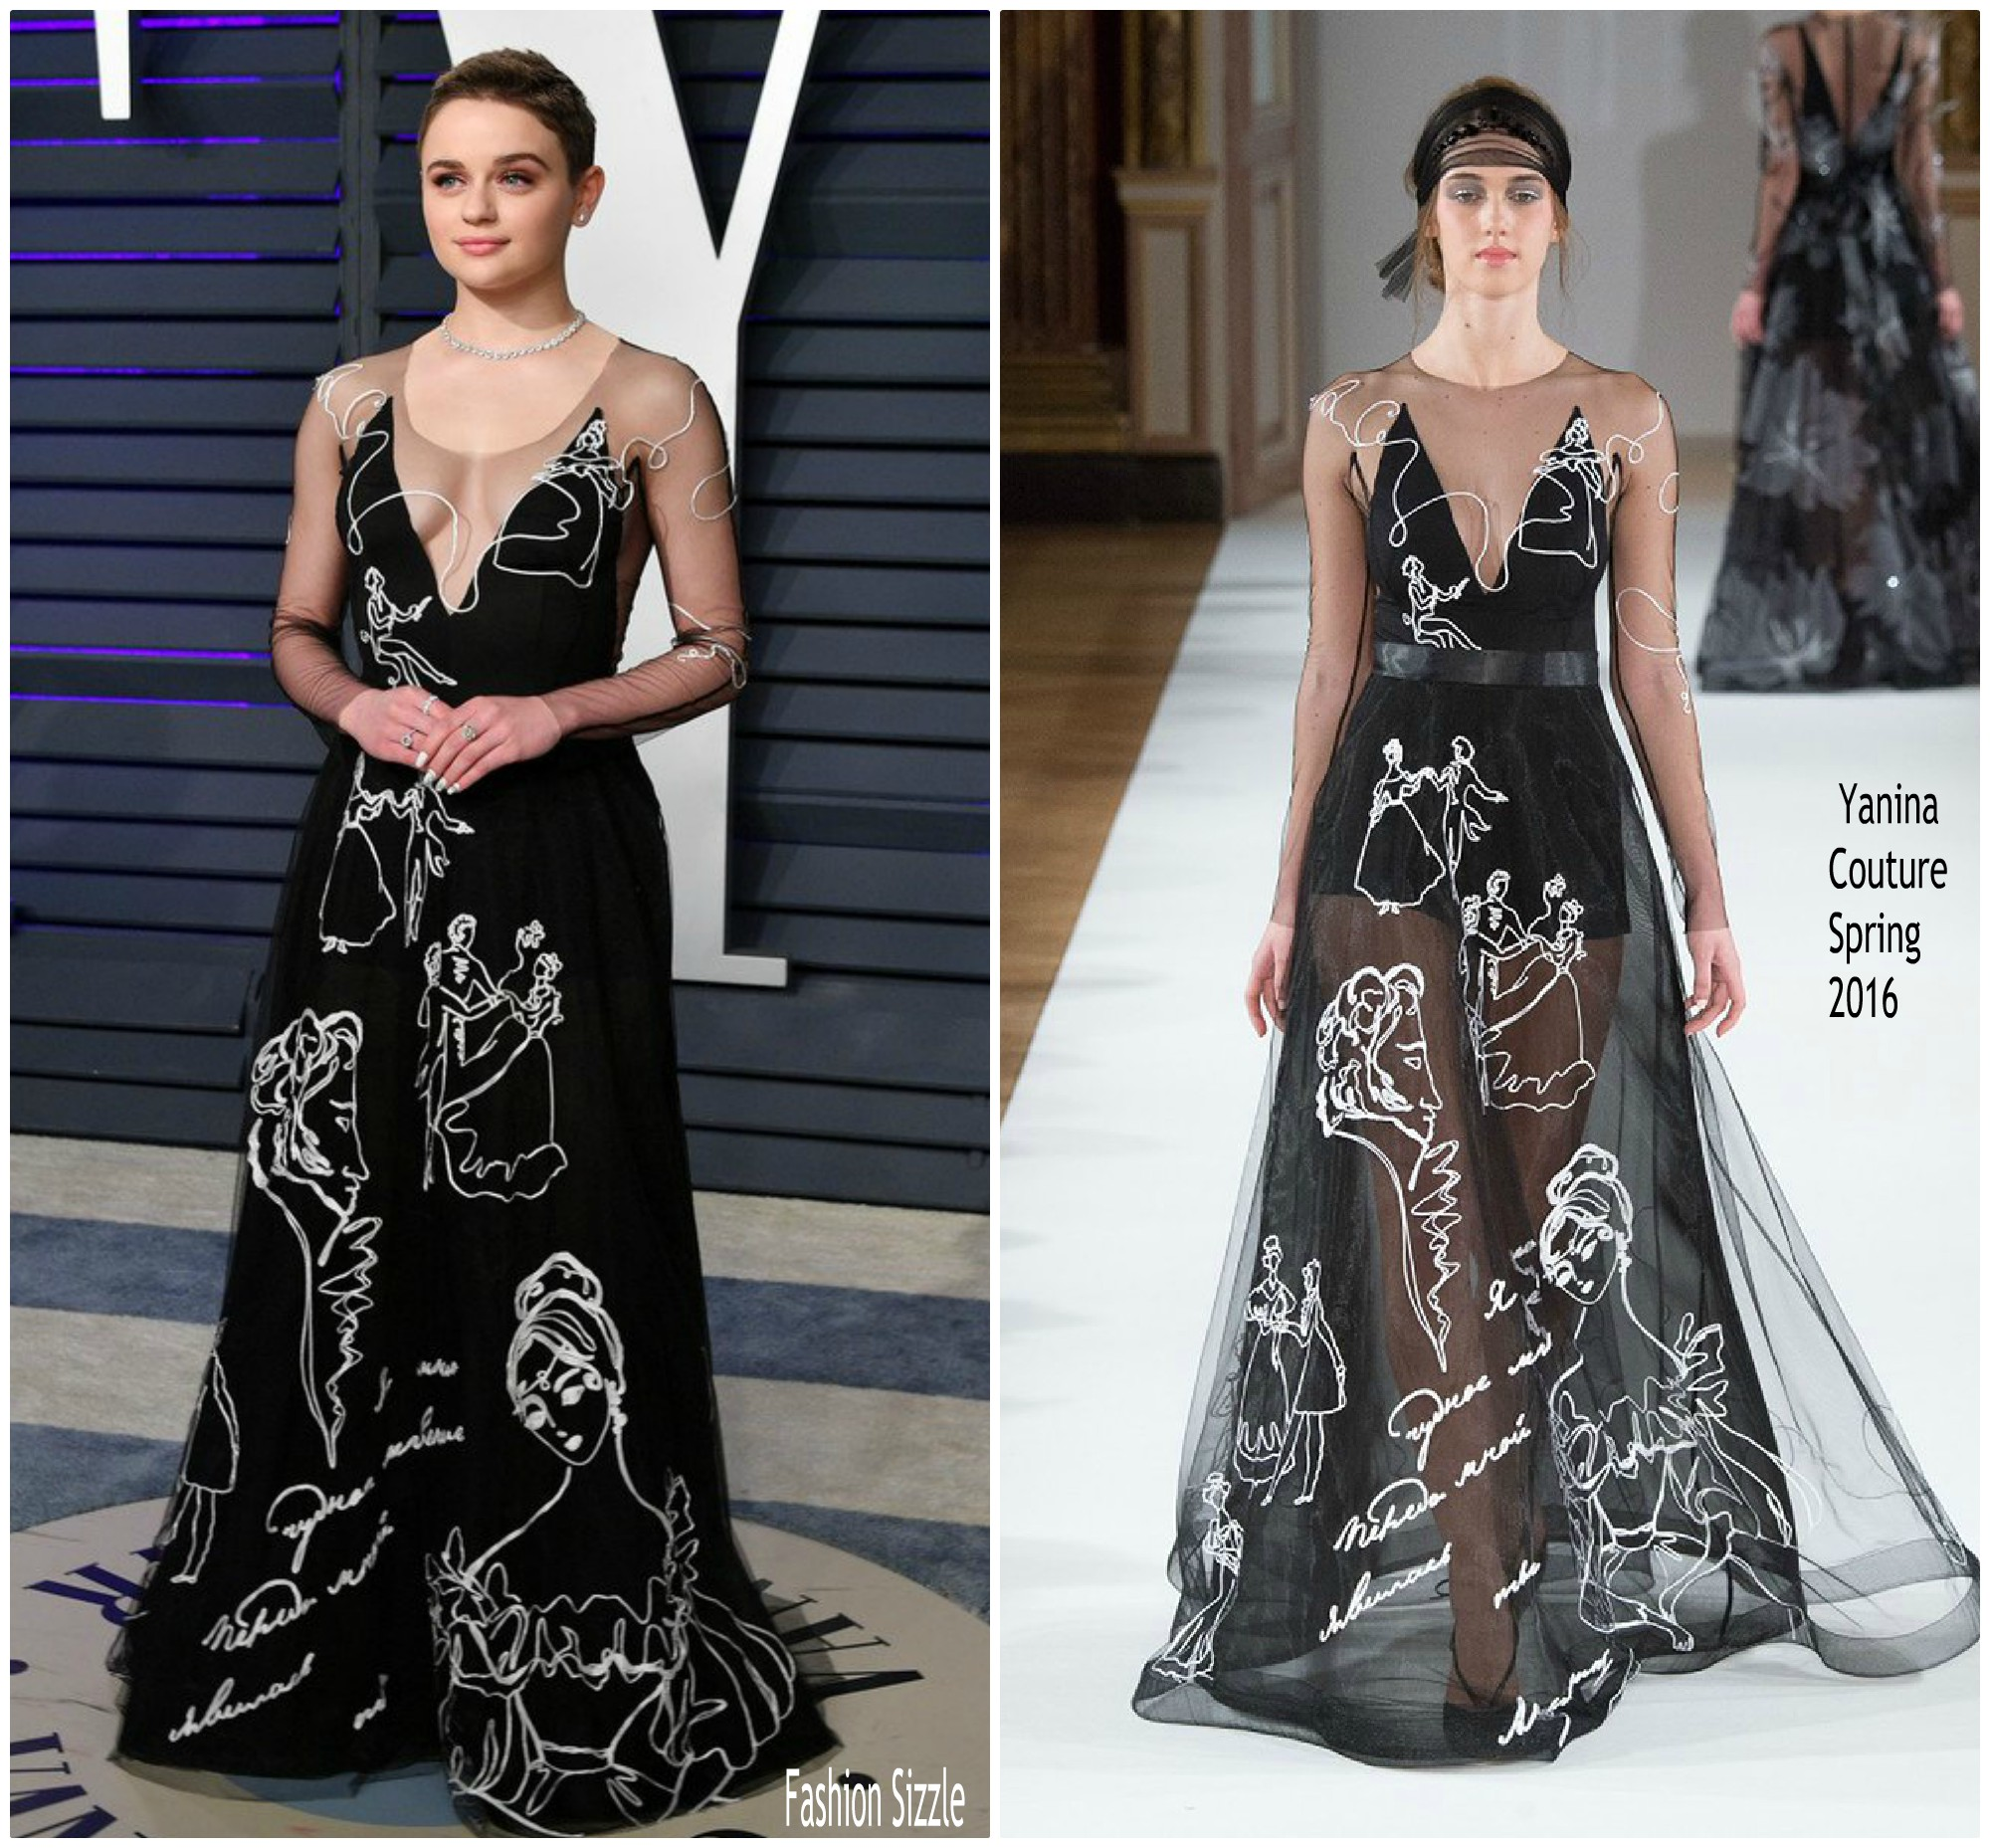 joey-king-in-yanina-couture-2019-vanity-fair-oscar-party